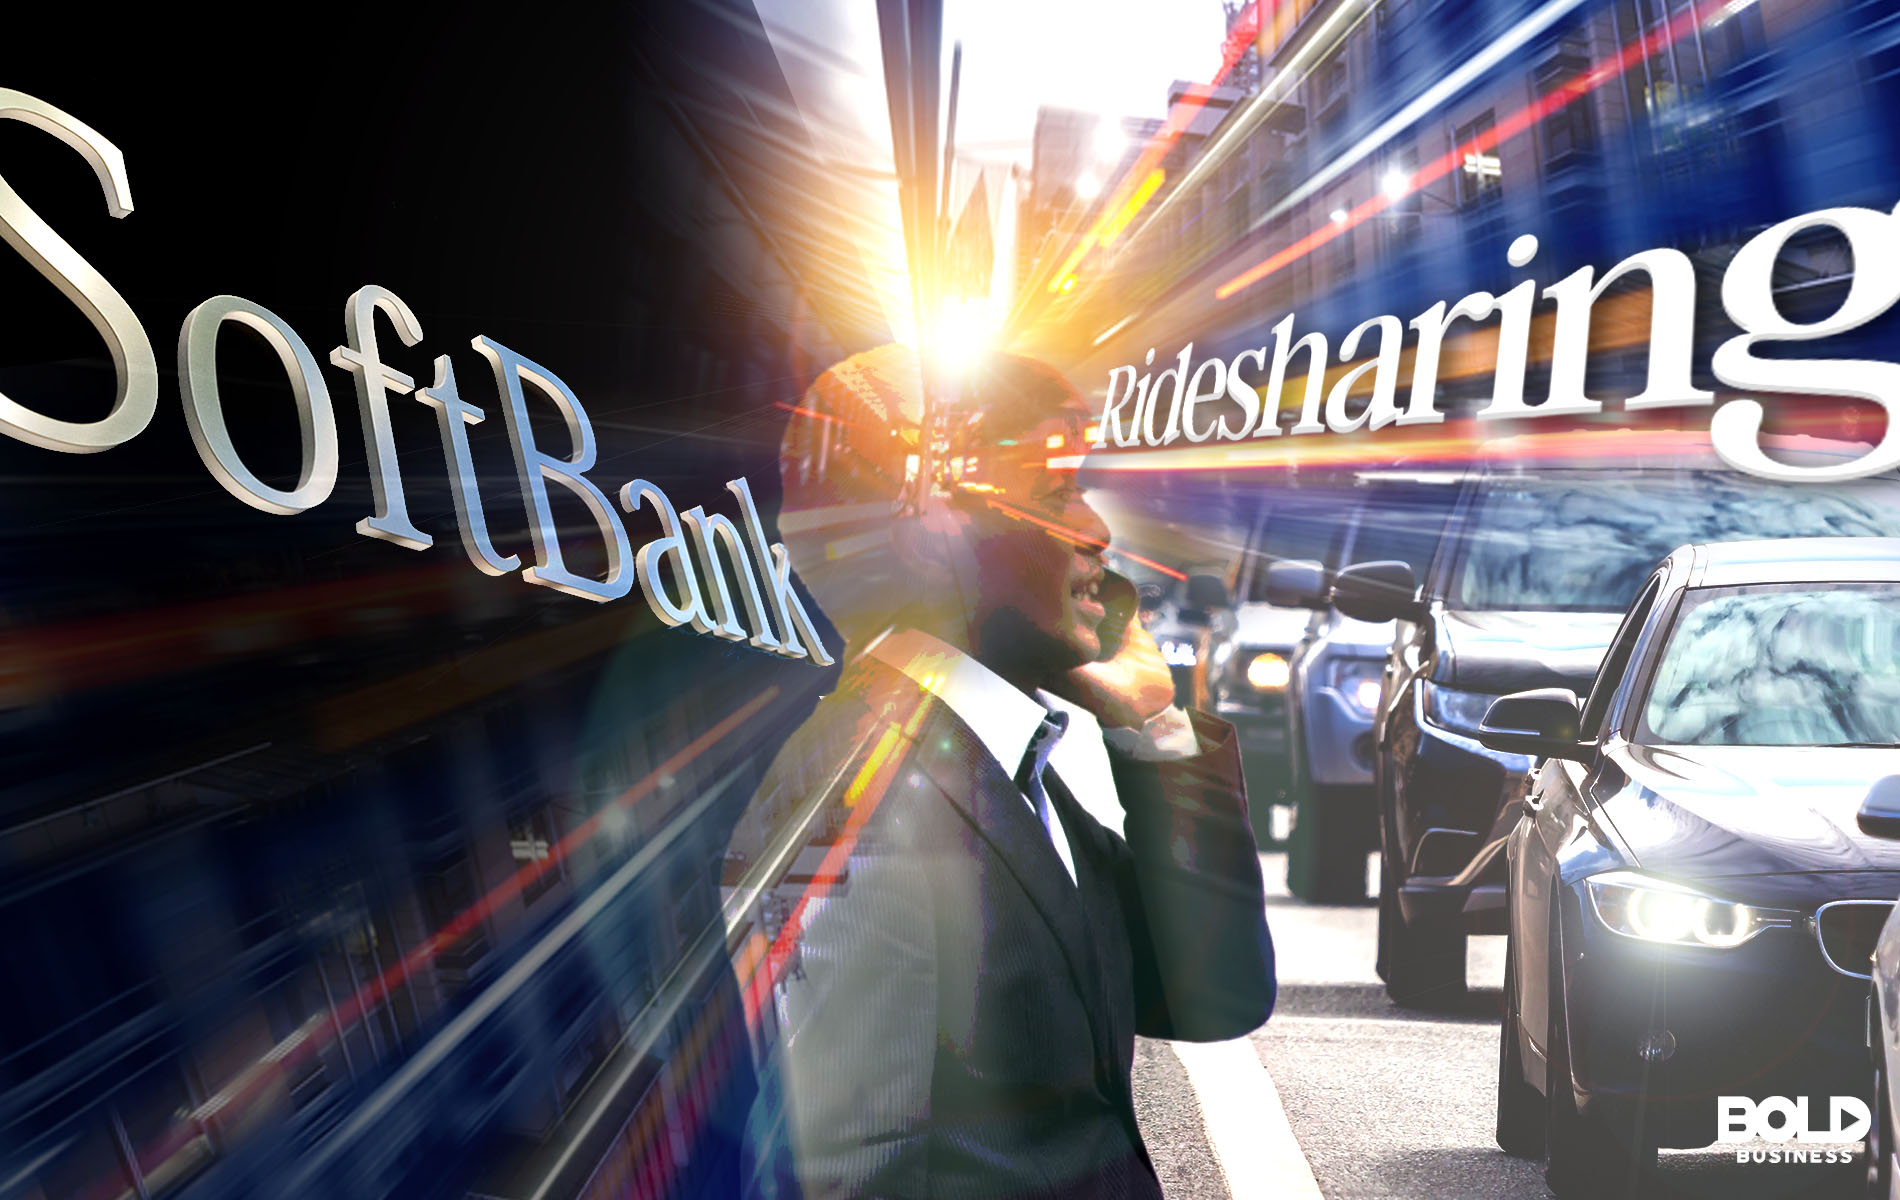 man on phone, cars on the road with SoftBank and ridesharing in text